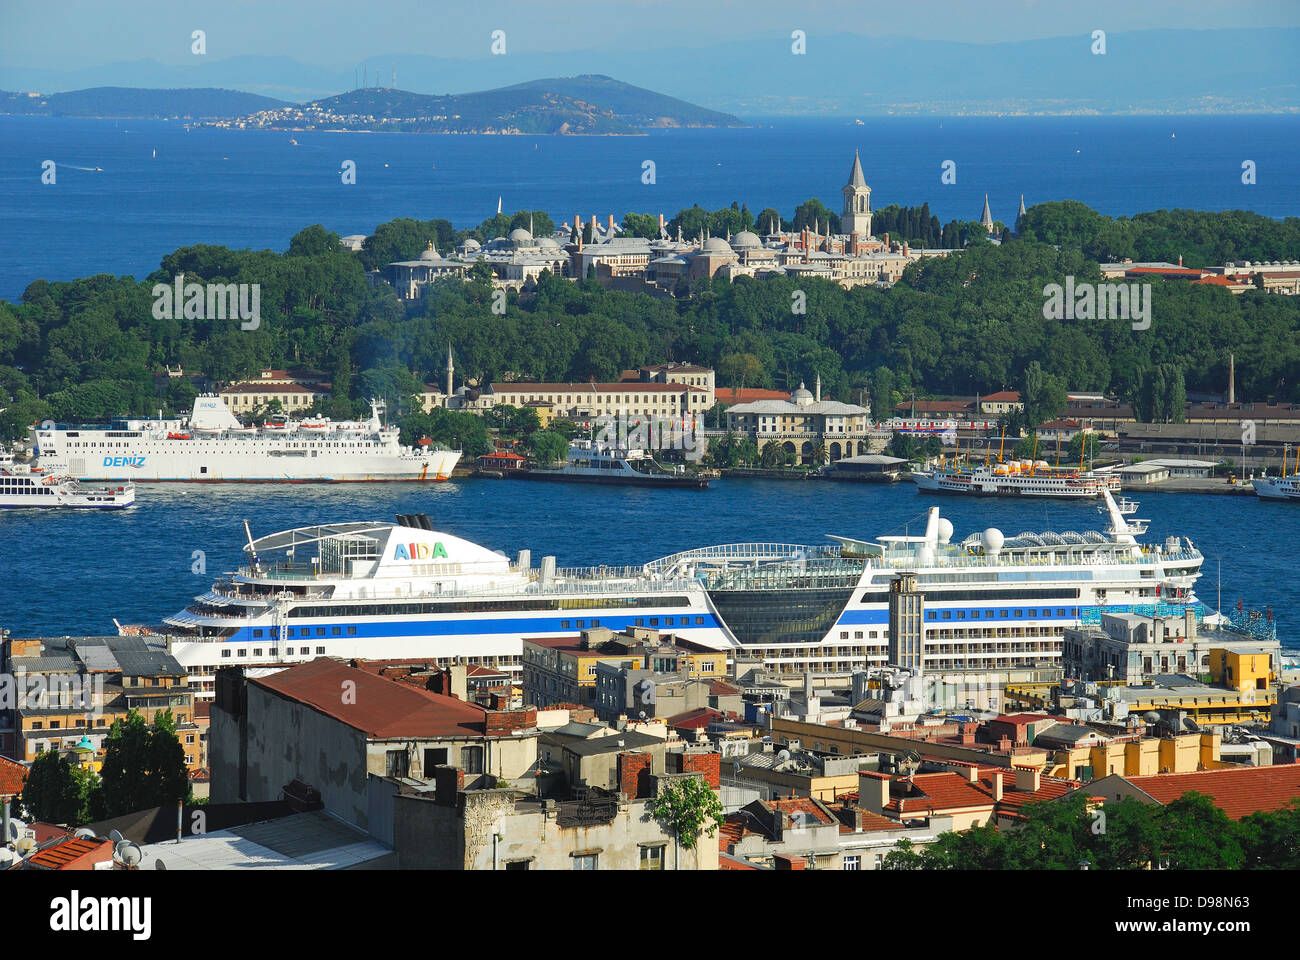 ISTANBUL, TURKEY. A view over the Golden Horn to Topkapi Palace, Gulhane Park and the Sea of Marmara. - Stock Image